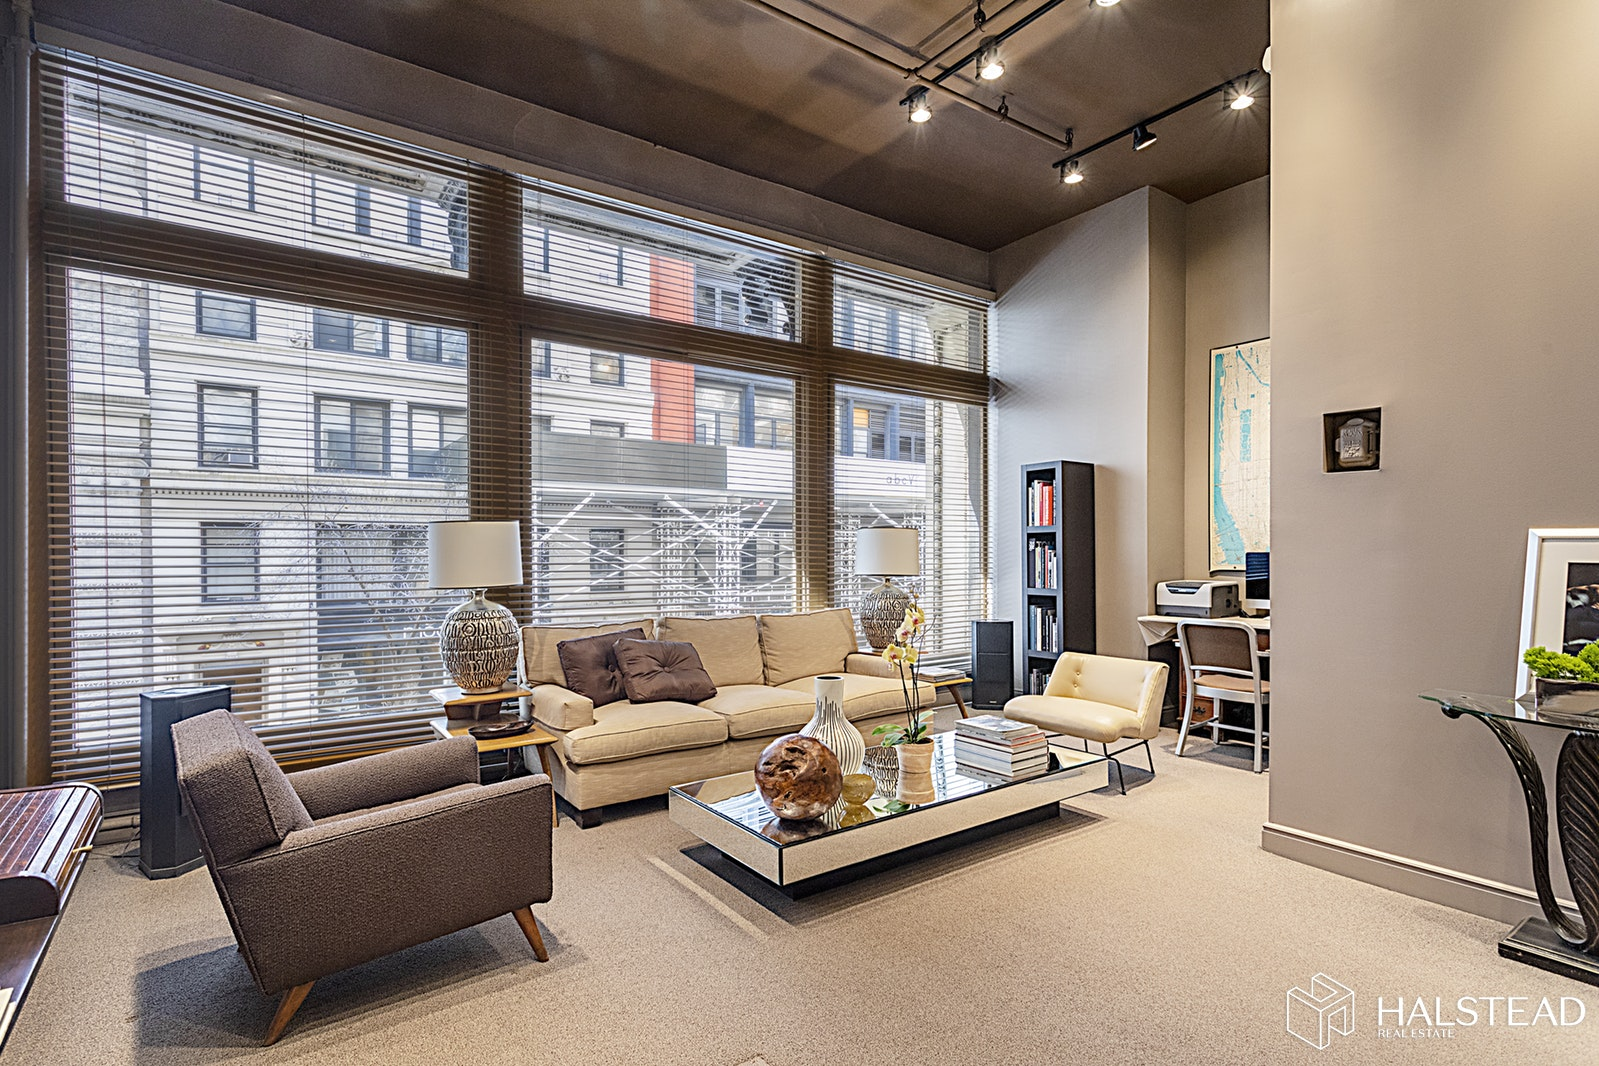 39 East 19th Street 2, Flatiron, NYC, 10003, $1,495,000, Property For Sale, Halstead Real Estate, Photo 1